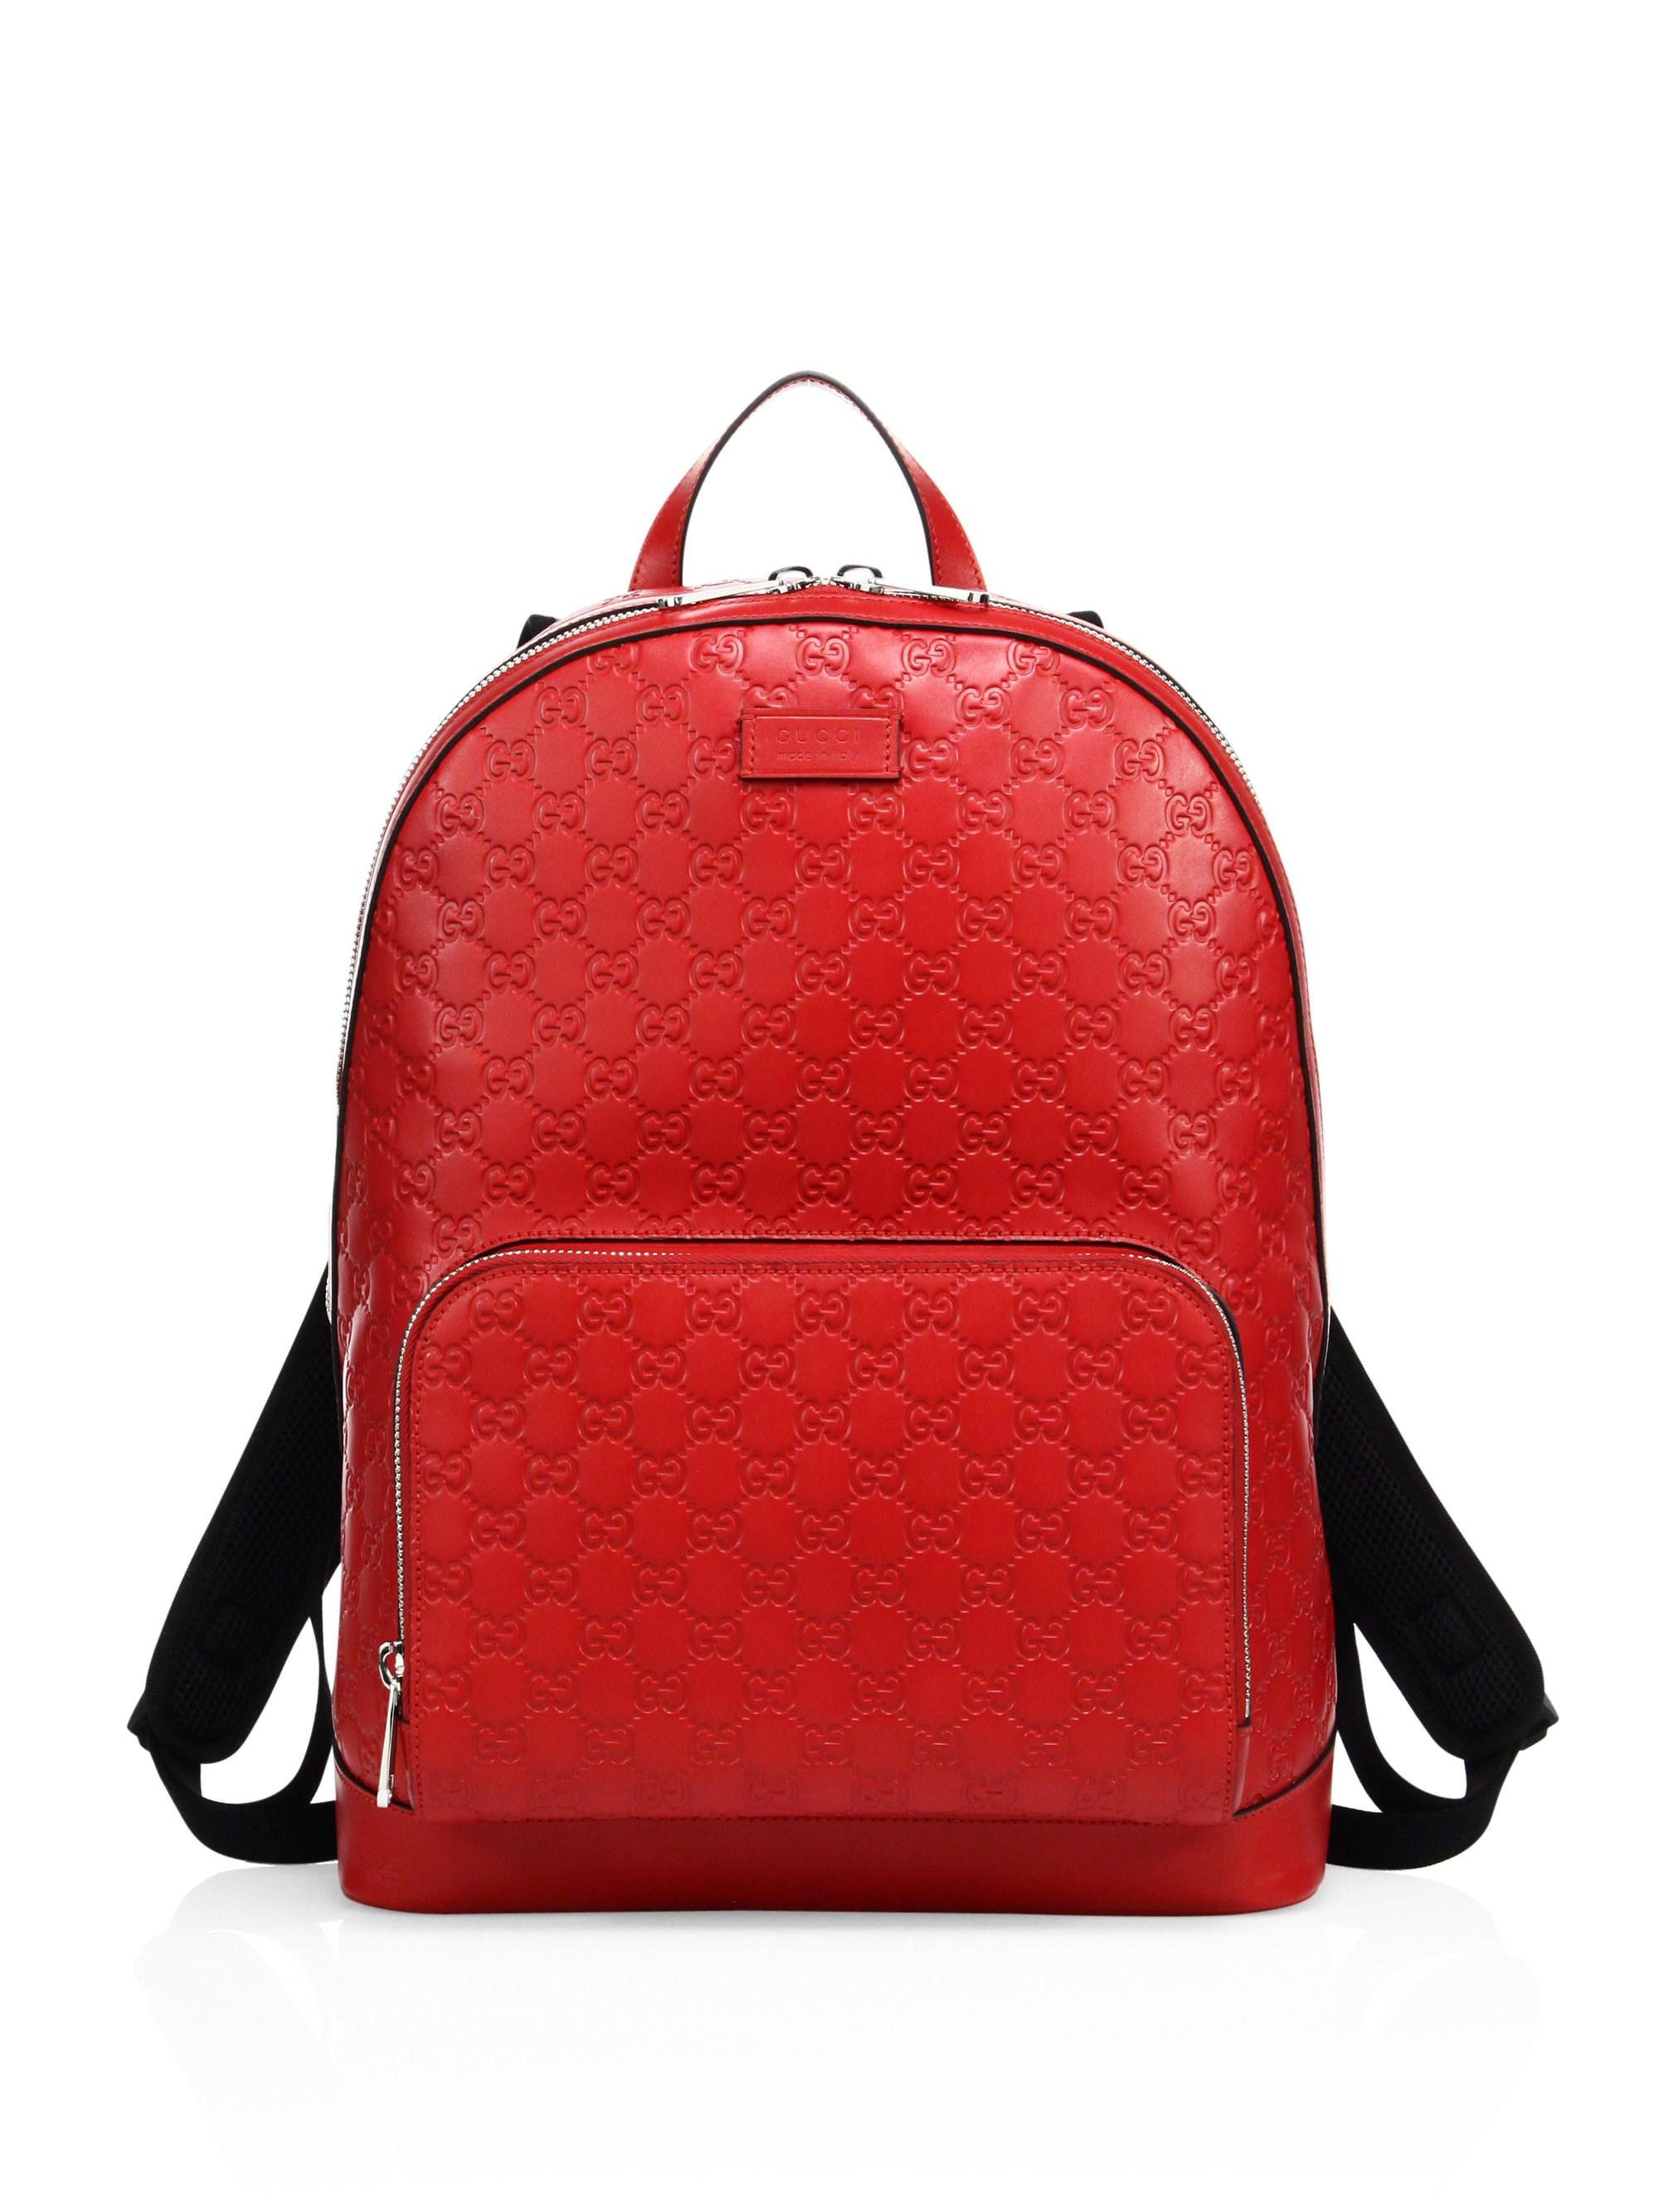 Lyst - Gucci Men s Signature Embossed Leather Backpack - Black in ... 5430cd3f407e4